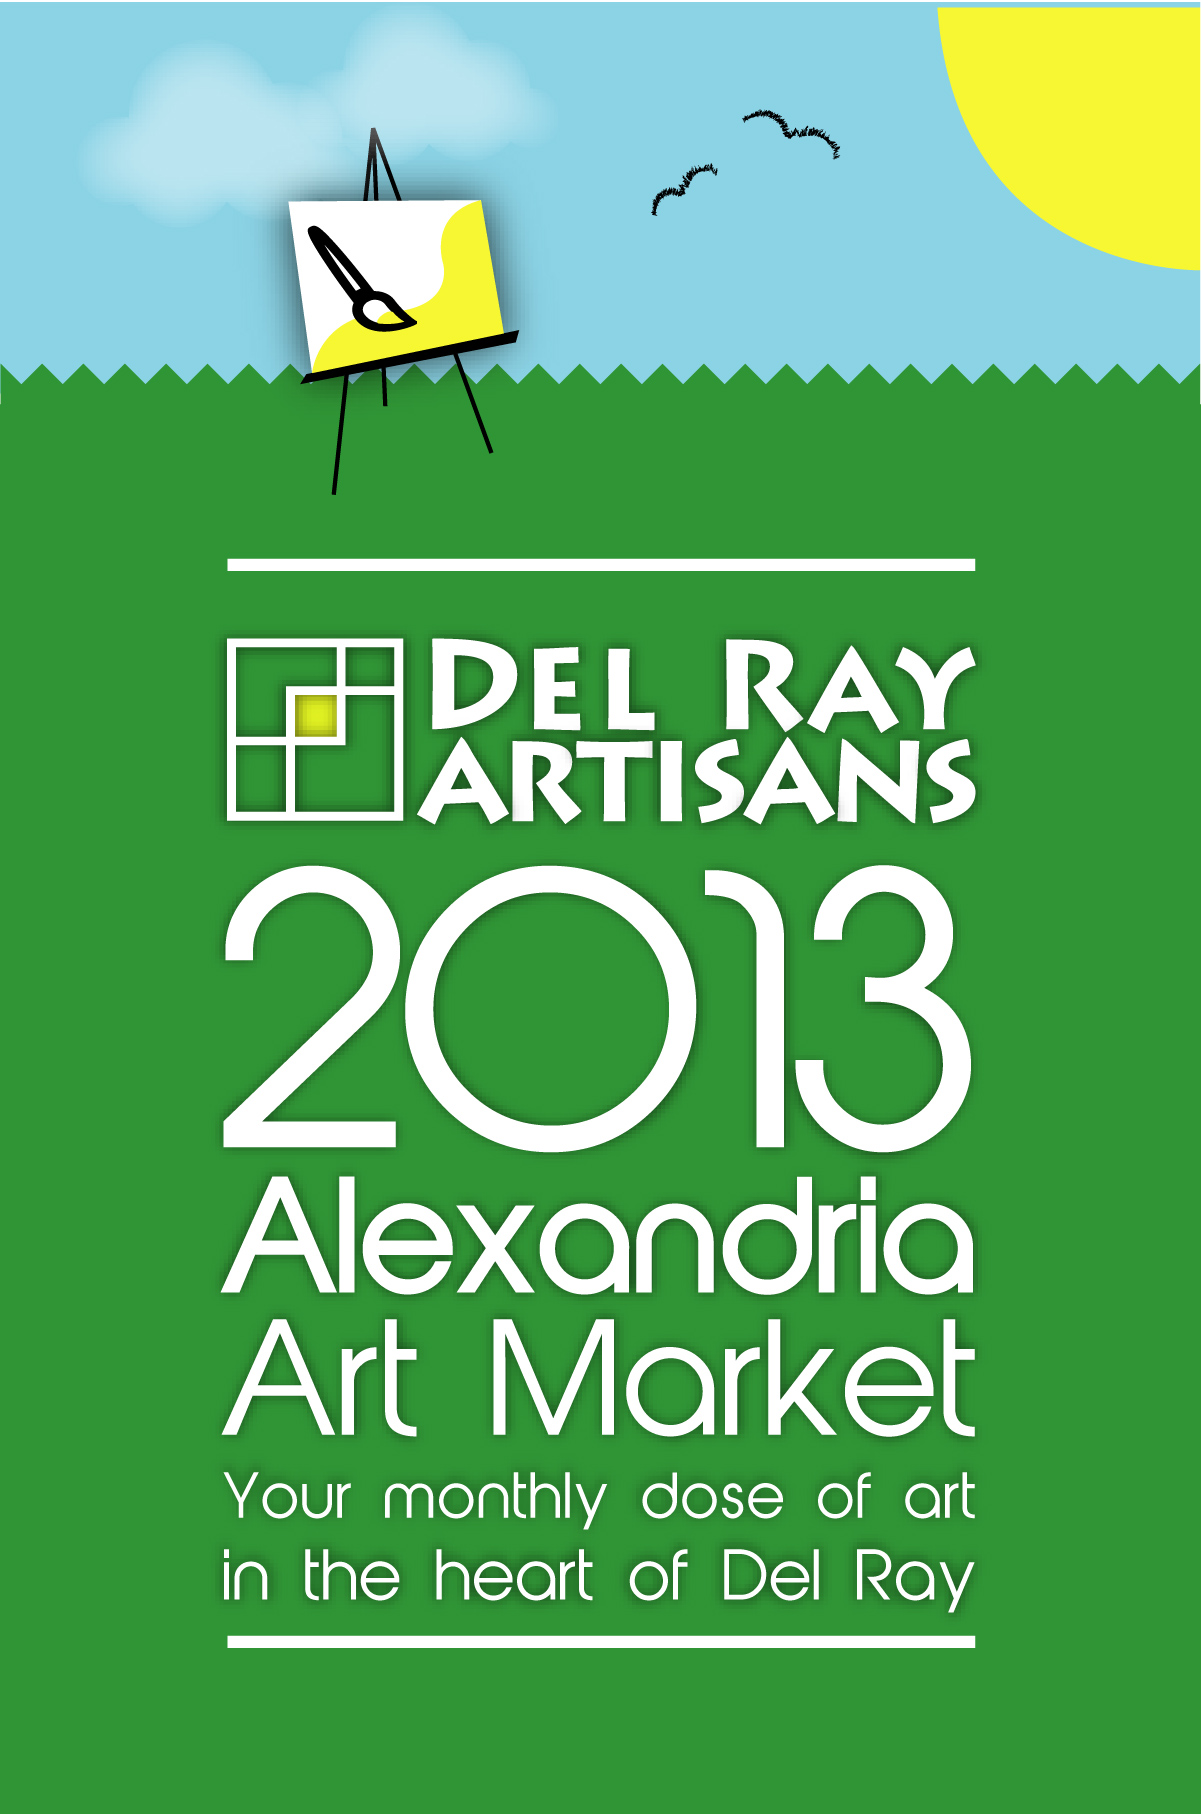 Postcard design for Alexandria Art Market. Design by Tamara Wilkerson